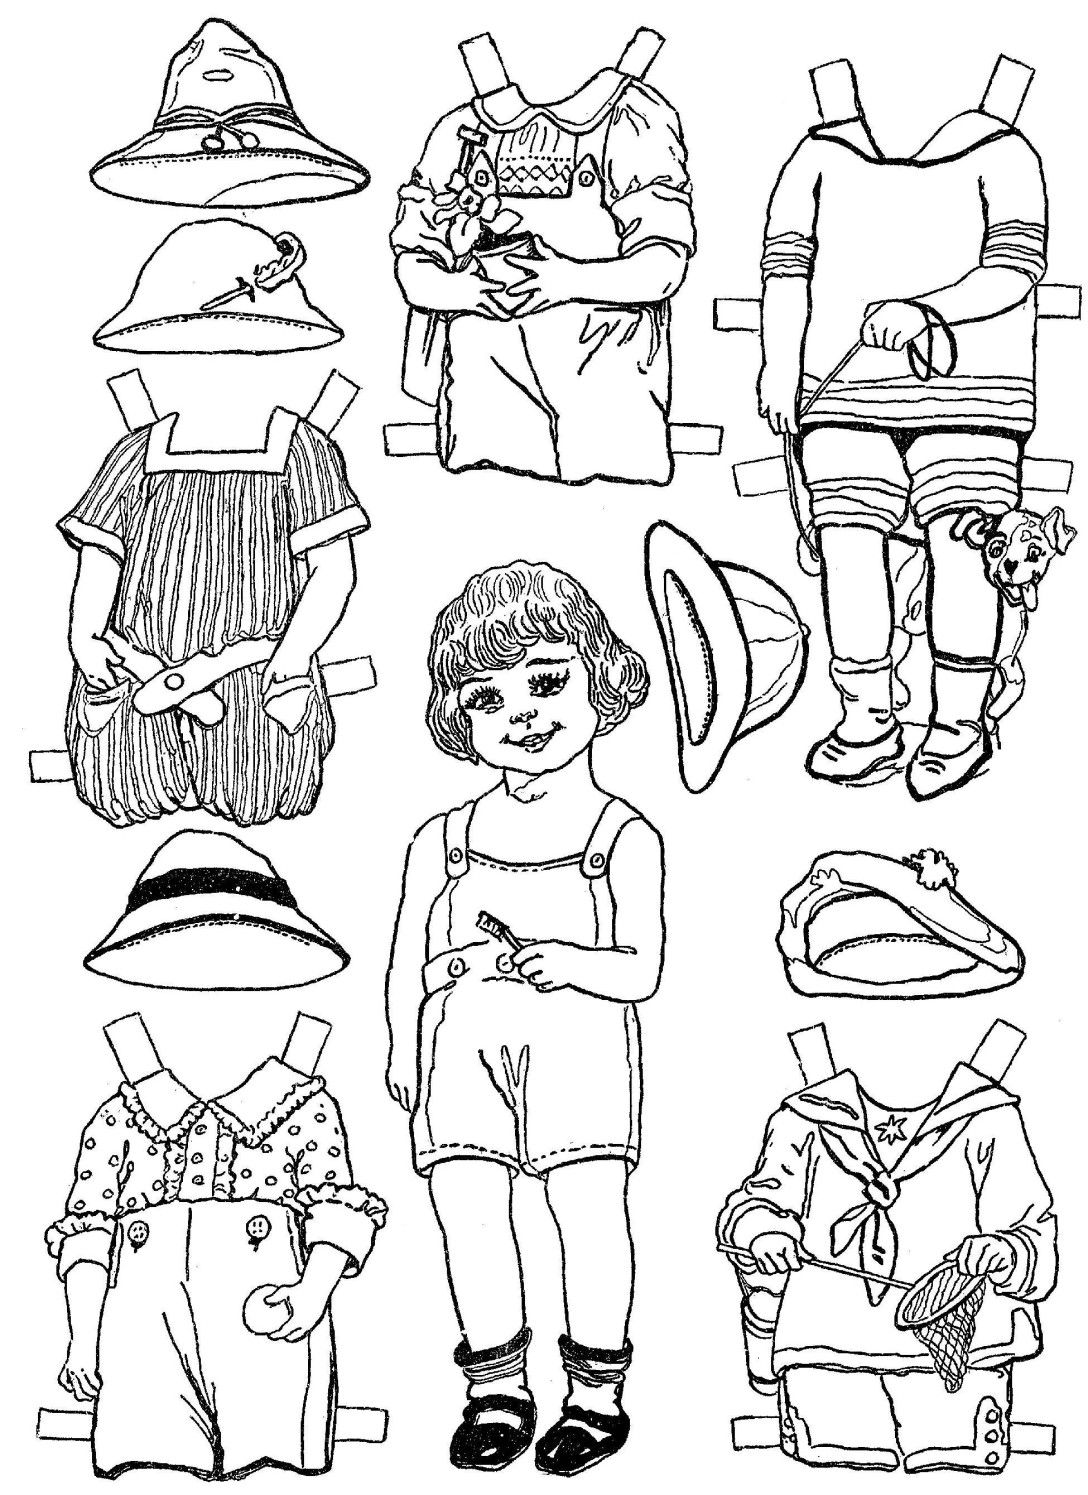 Paper Dolls. There are so many things to learn with these